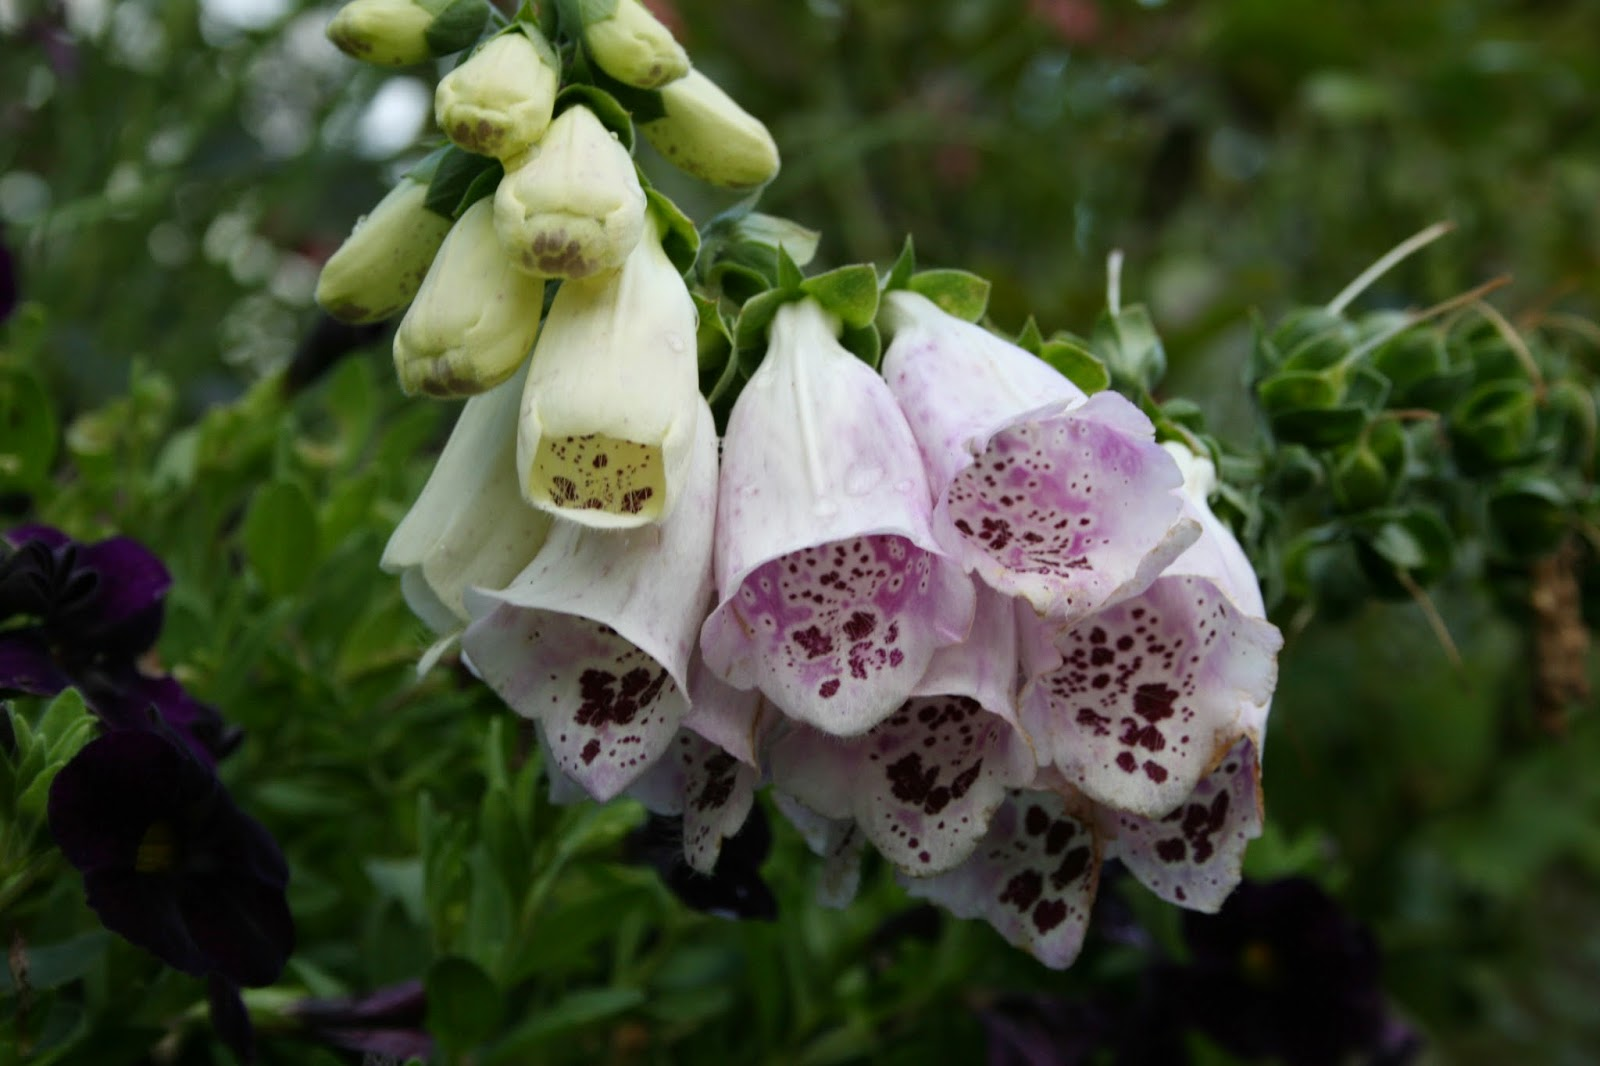 fingerborgsblomma digitalis purpurea